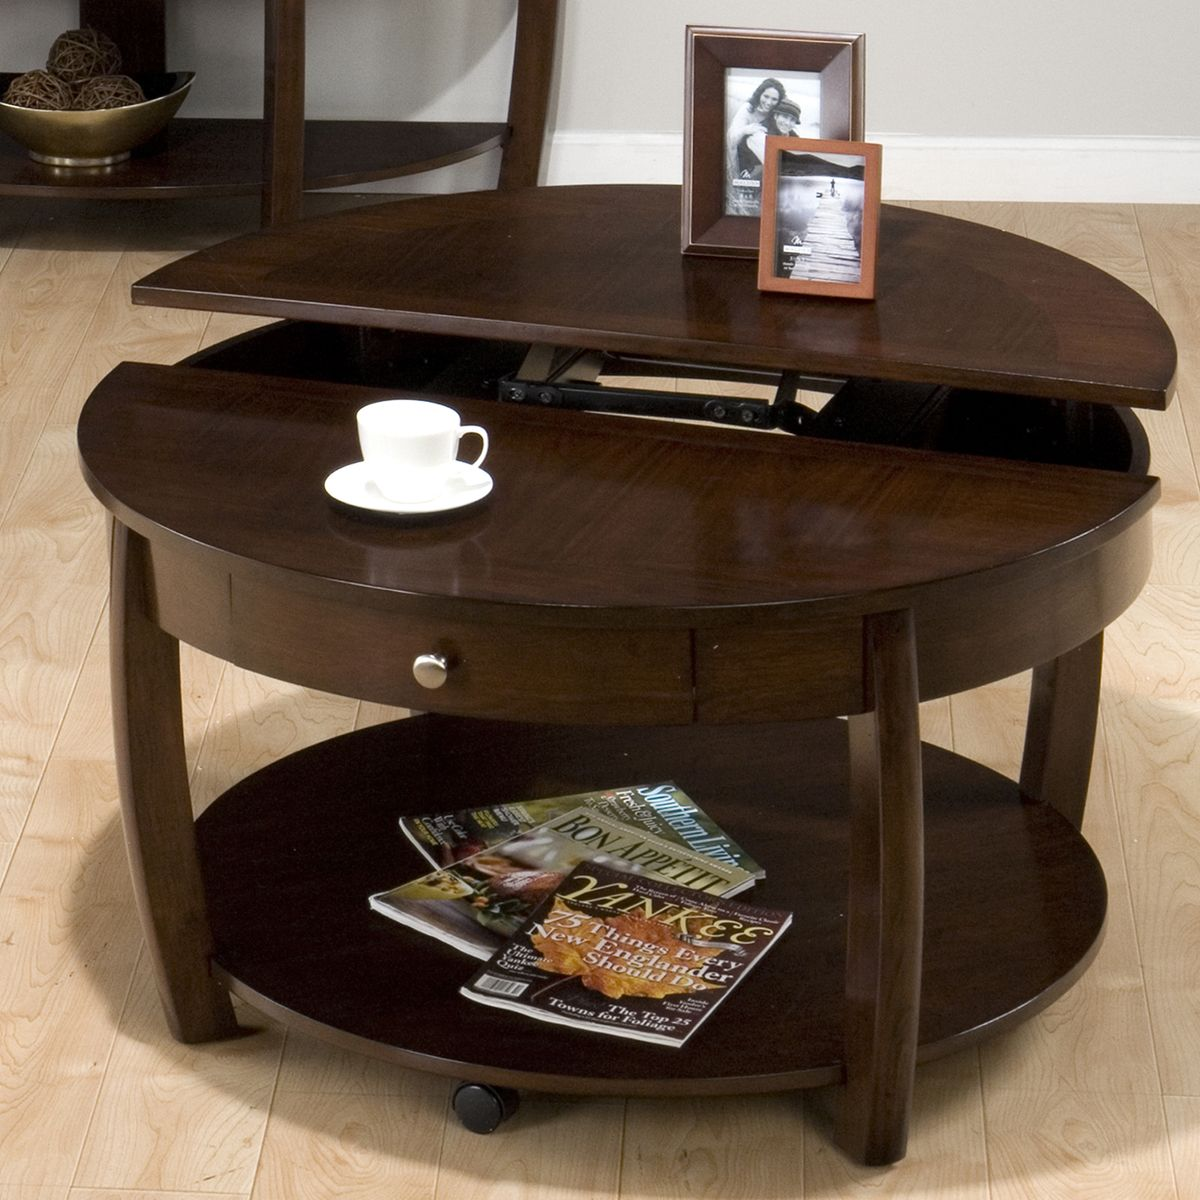 - The Round Coffee Tables With Storage – The Simple And Compact